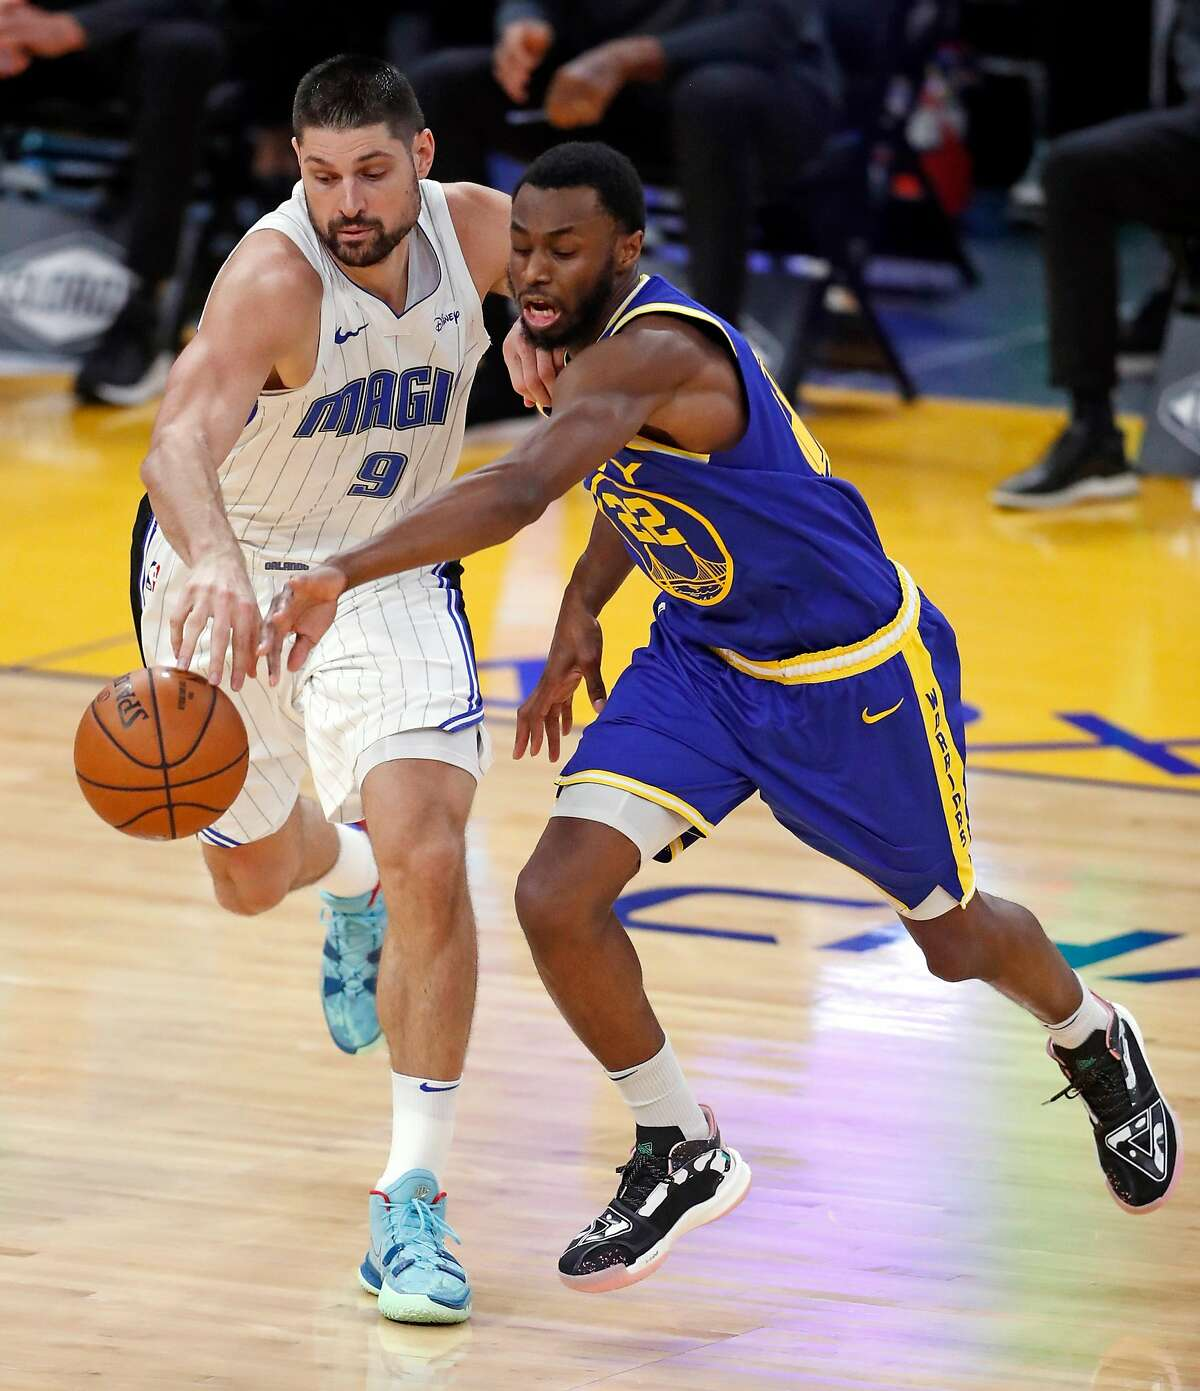 Golden State Warriors' Andrew Wiggins and Orlando Magic's Nikola Vucevic vie for loose ball in 2nd quarter during NBA game at Chase Center in San Francisco, Calif., on Thursday, February 11, 2021.